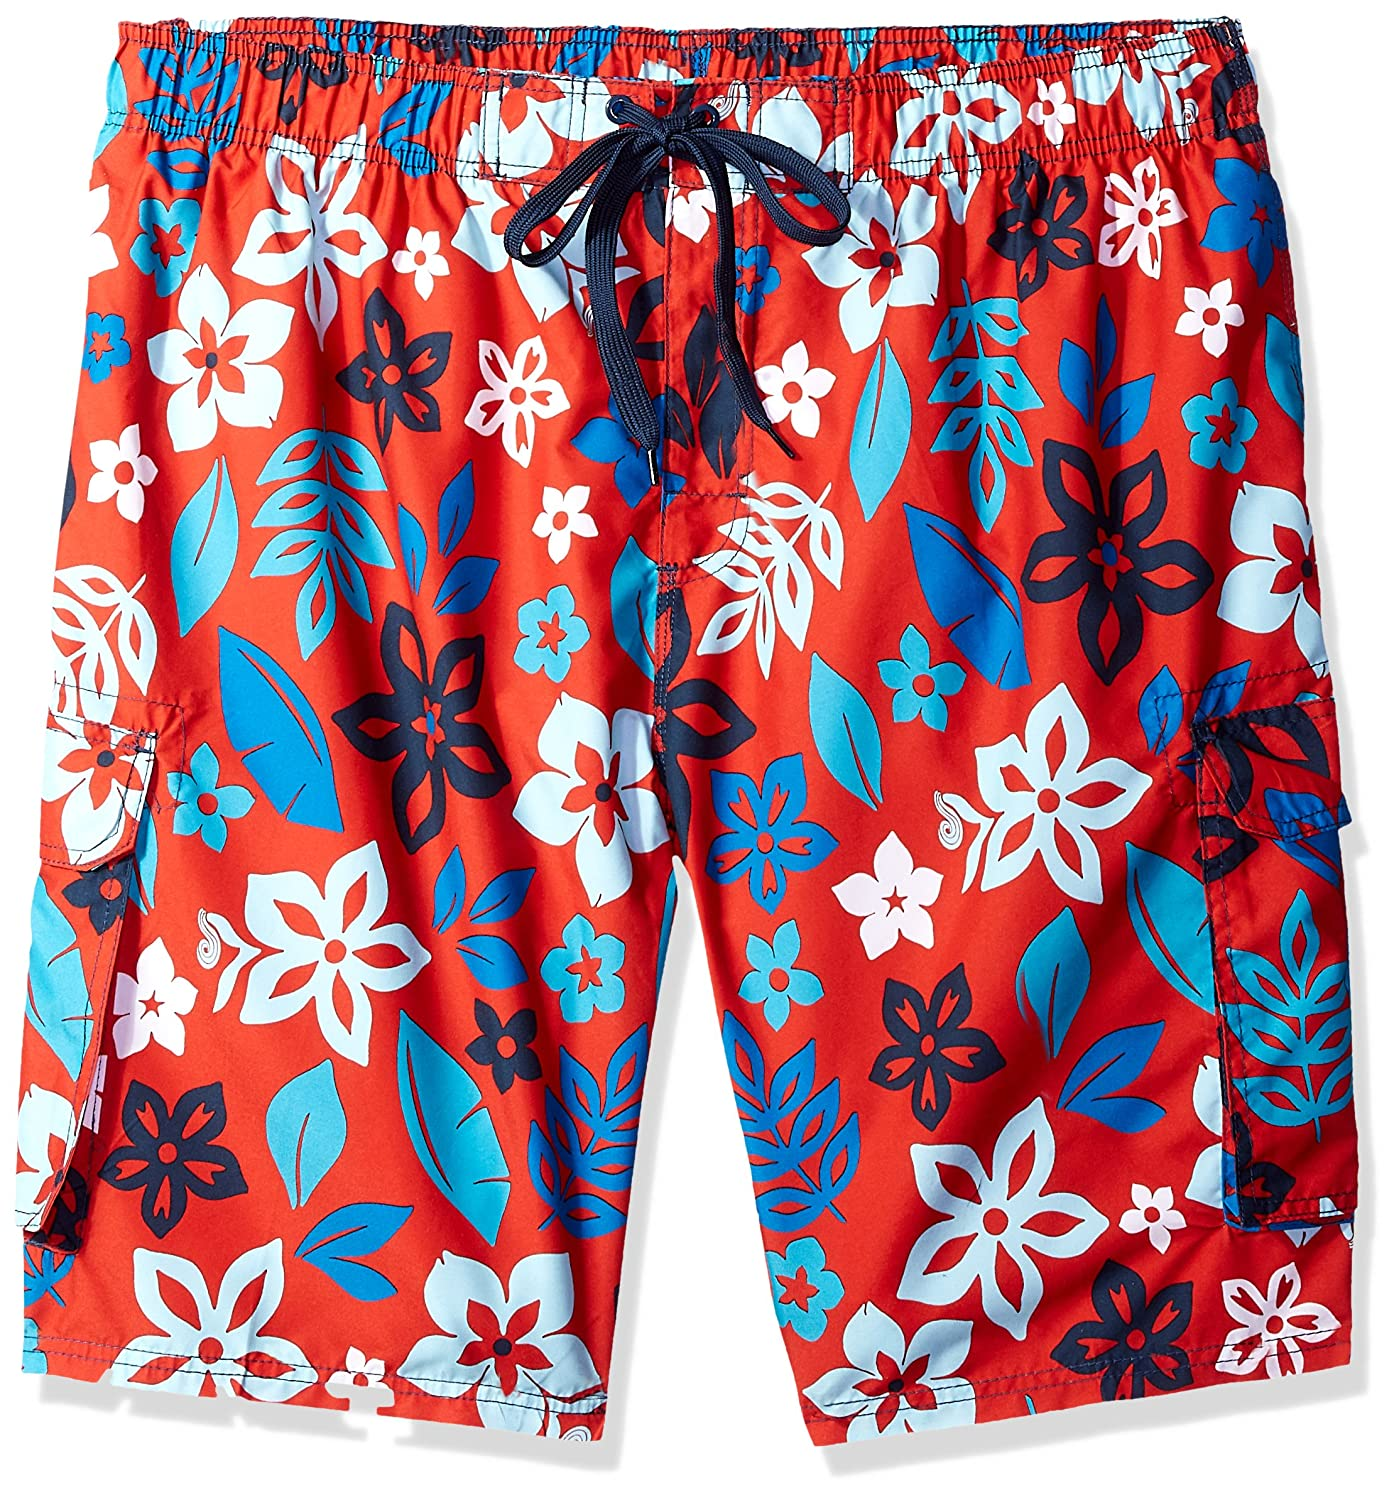 Kanu Surf Men's Big Revival Extended Size Quick Dry Beach Shorts Swim Trunk 5452X